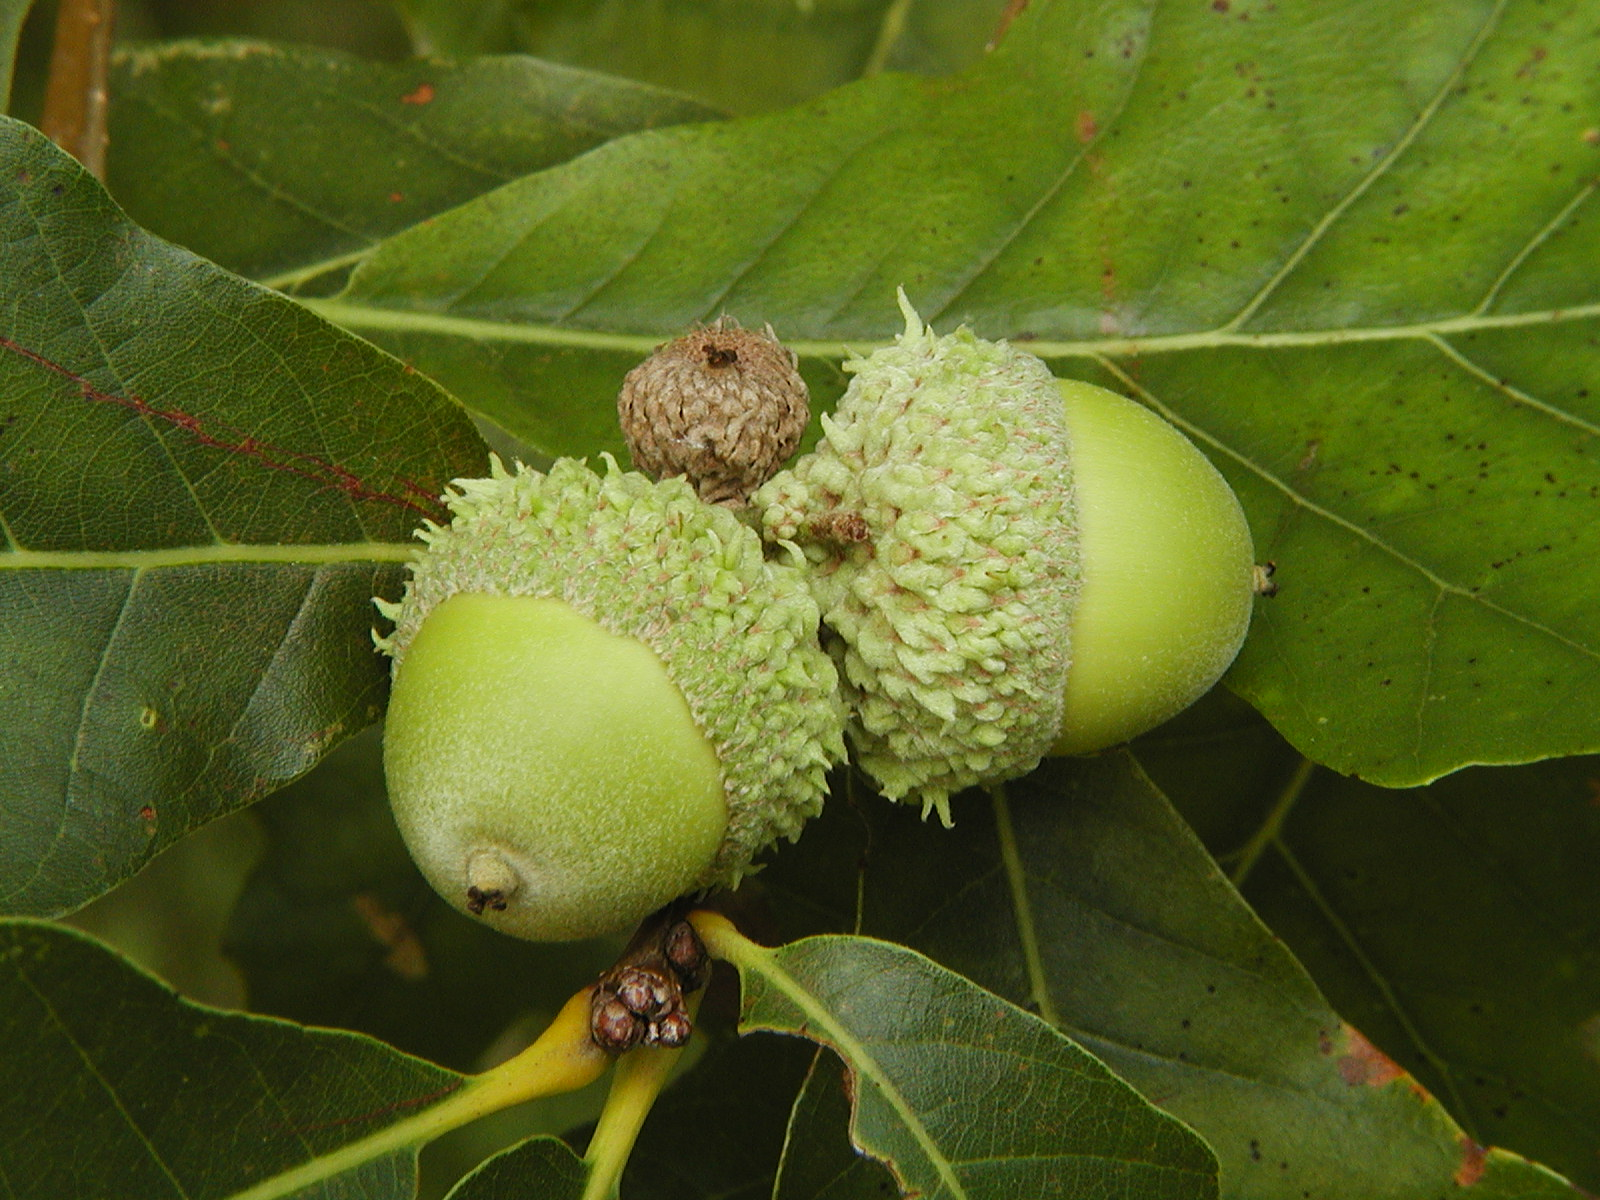 Types of Magnolia Tree with Pictures, Facts about Flowering Oak tree seeds pictures